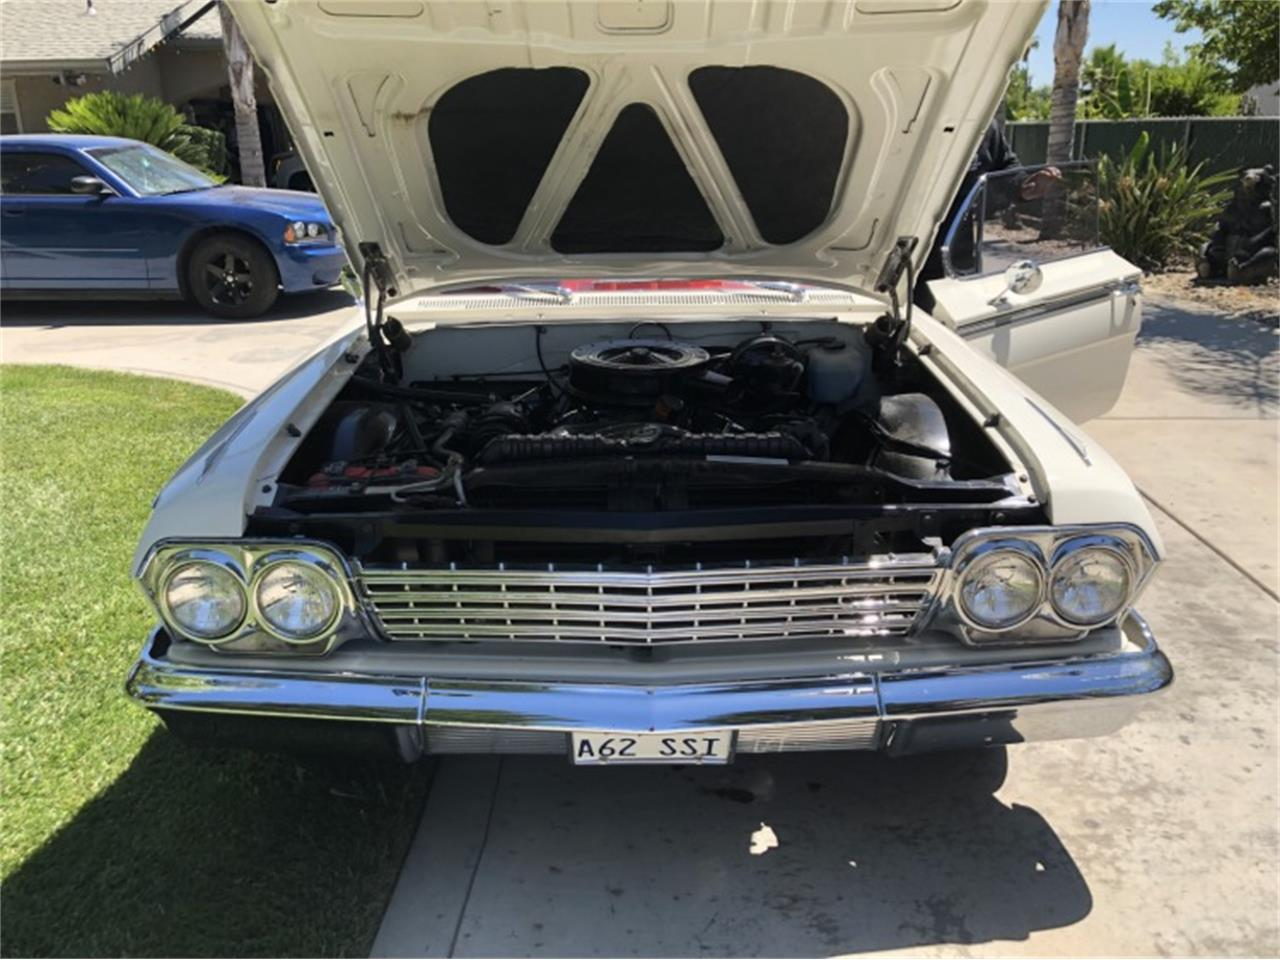 Large Picture of Classic 1962 Impala SS Auction Vehicle Offered by Motorsport Auction Group 797664 - QIEP